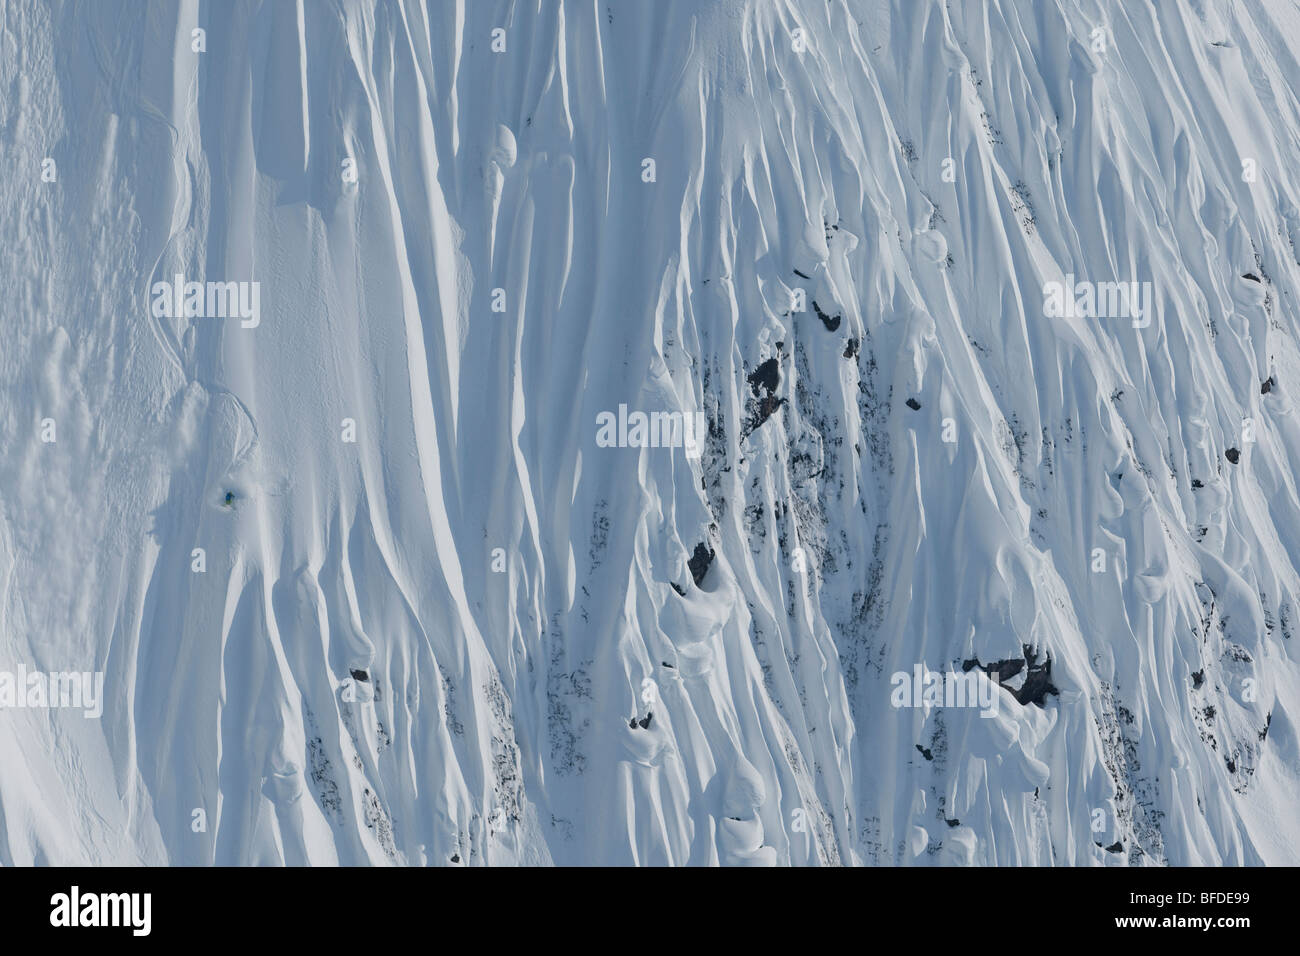 Skier making turns in steep terrain, Haines, Alaska. - Stock Image